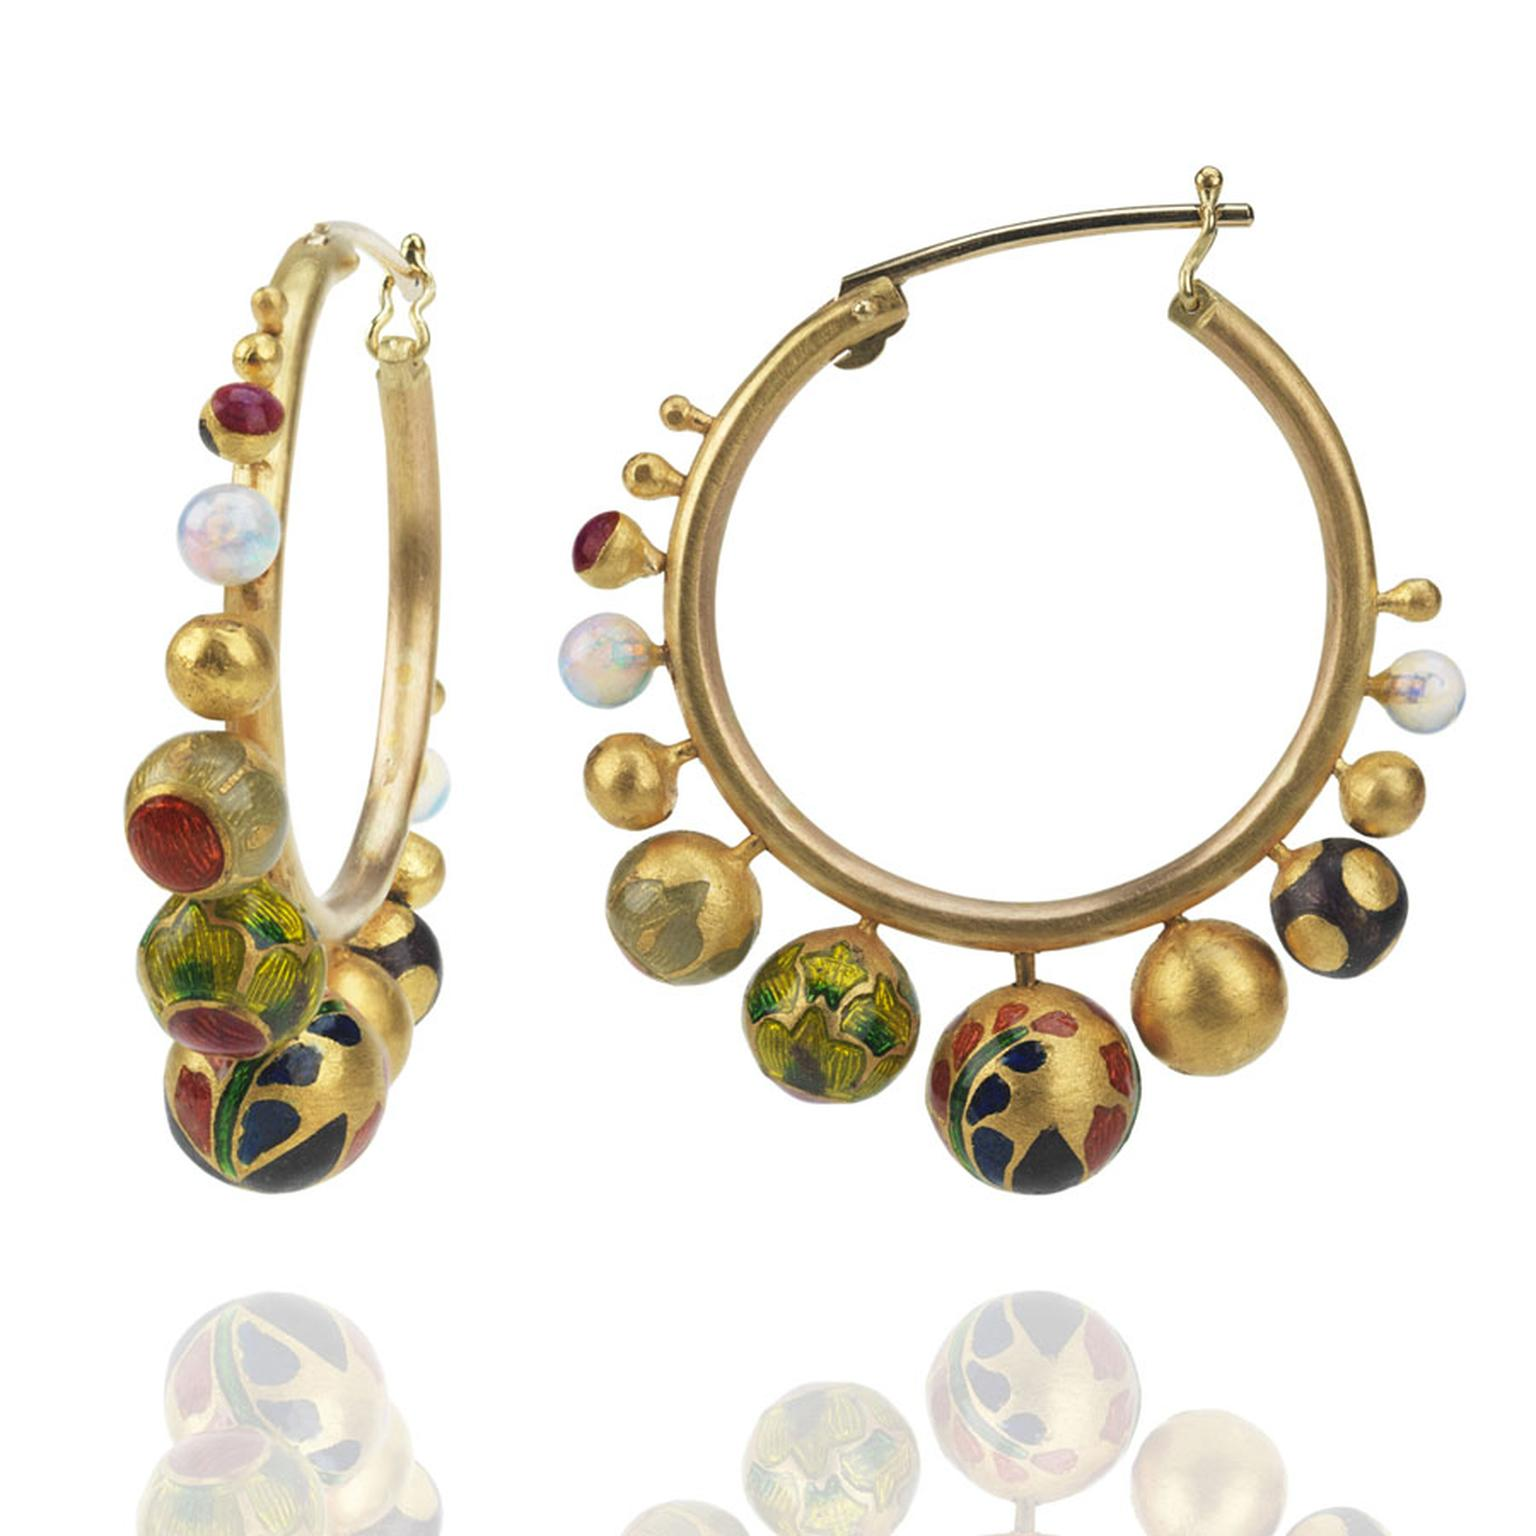 Alice Cicolini gold hoop Kimono earrings with vitreous enamel and white opal.